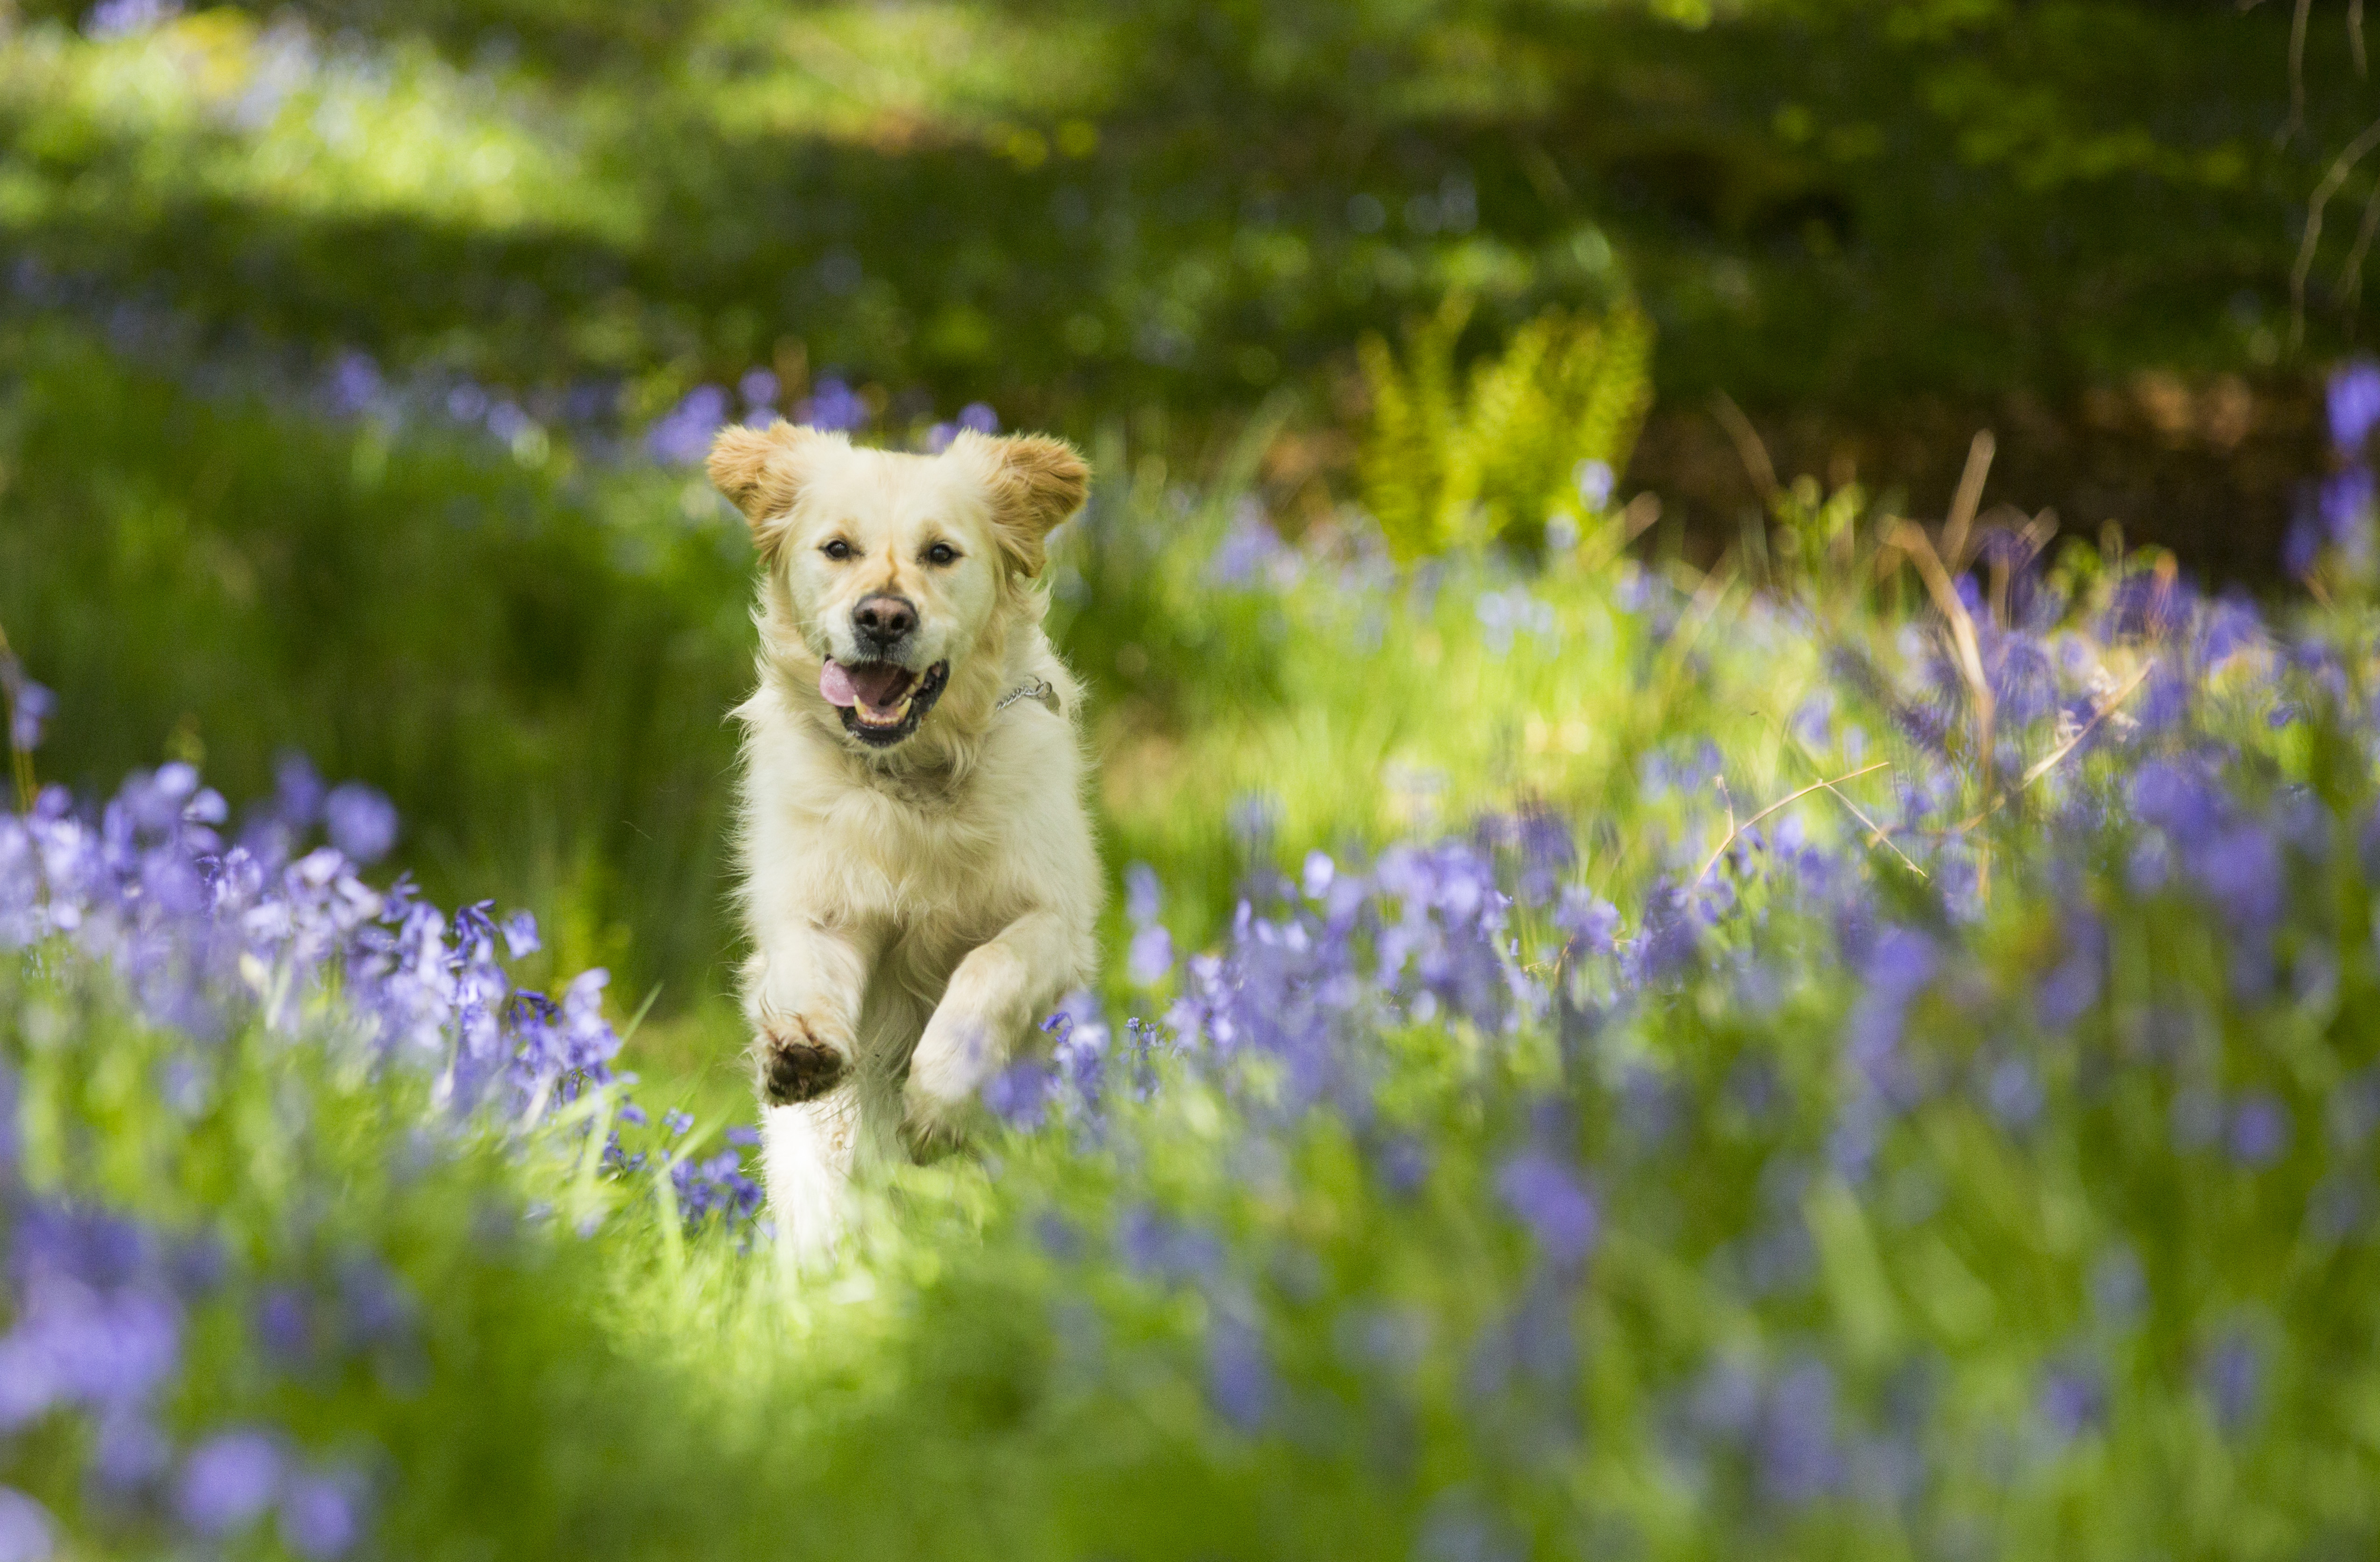 A Golden Retriever dog running through Bluebells in Jiffy Knotts wood in Lake District on May 20, 2015 in Ambleside, England.                                           The native British Bluebell is threatened by the highly invasive Spanish Bluebell.                                          PHOTOGRAPH BY Ashley Cooper / Barcroft Media (Photo credit should read Ashley Cooper / Barcroft Media via Getty Images)